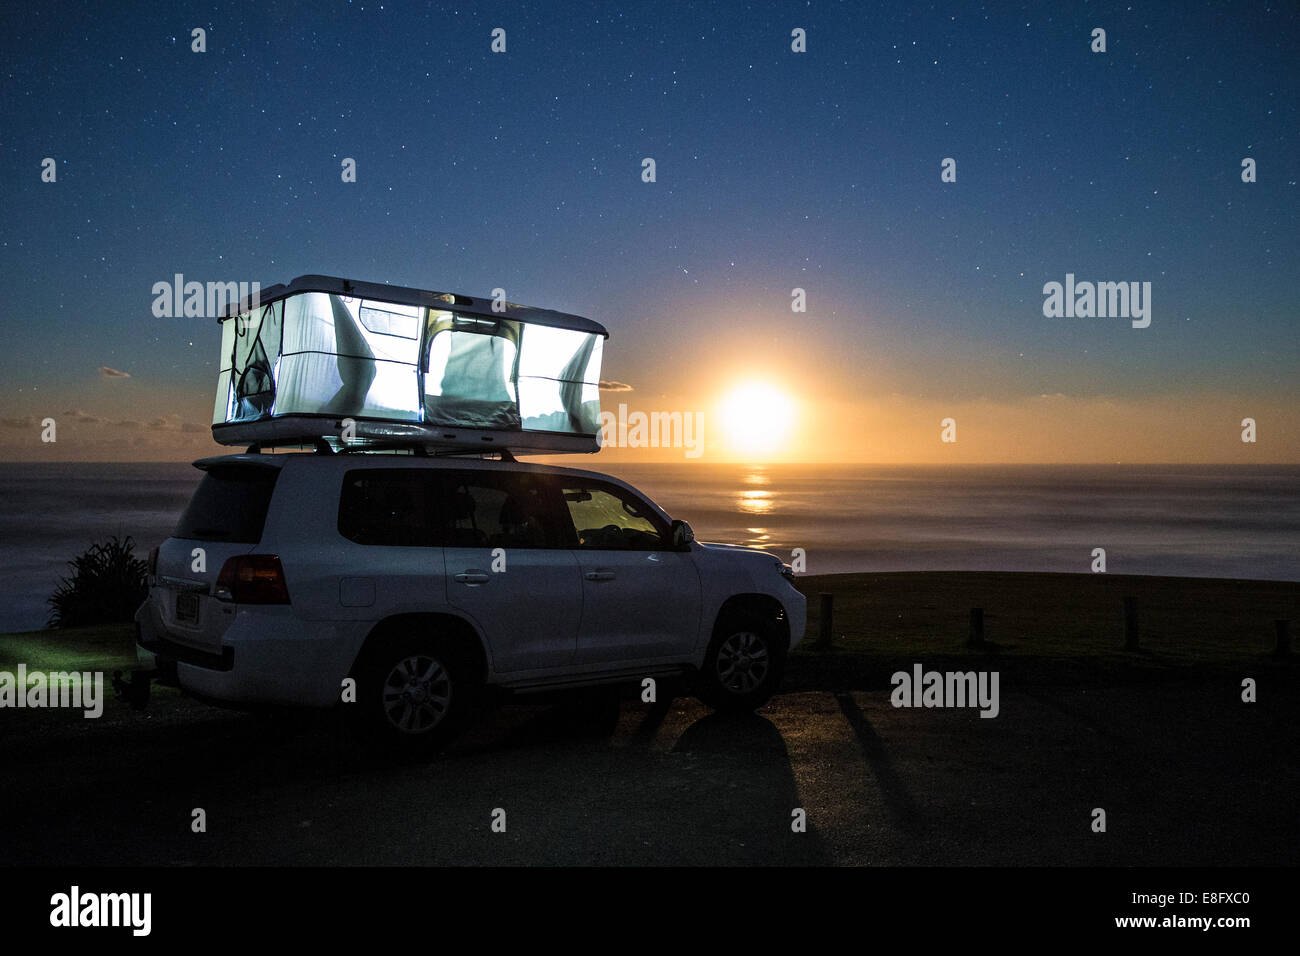 Sleeping tent on top of car - Stock Image